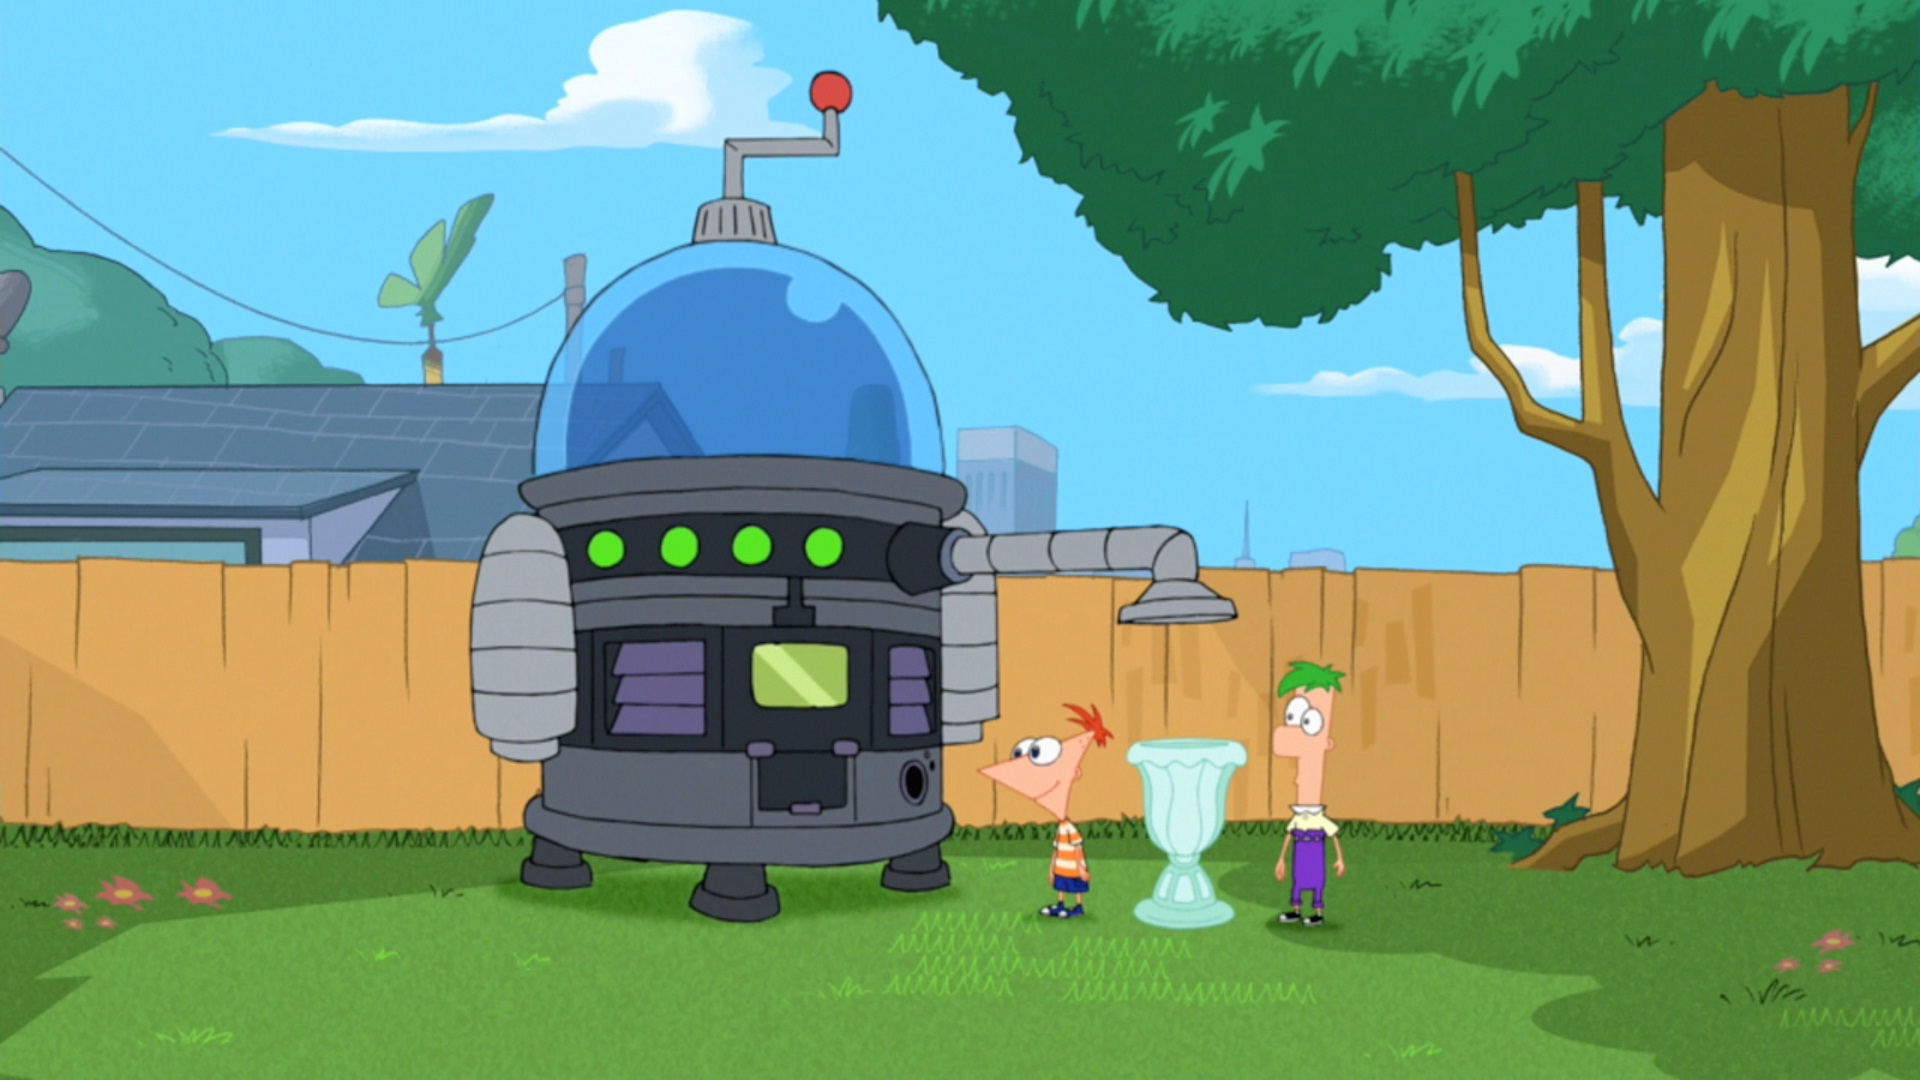 image space laser inator cropped jpg phineas and ferb wiki